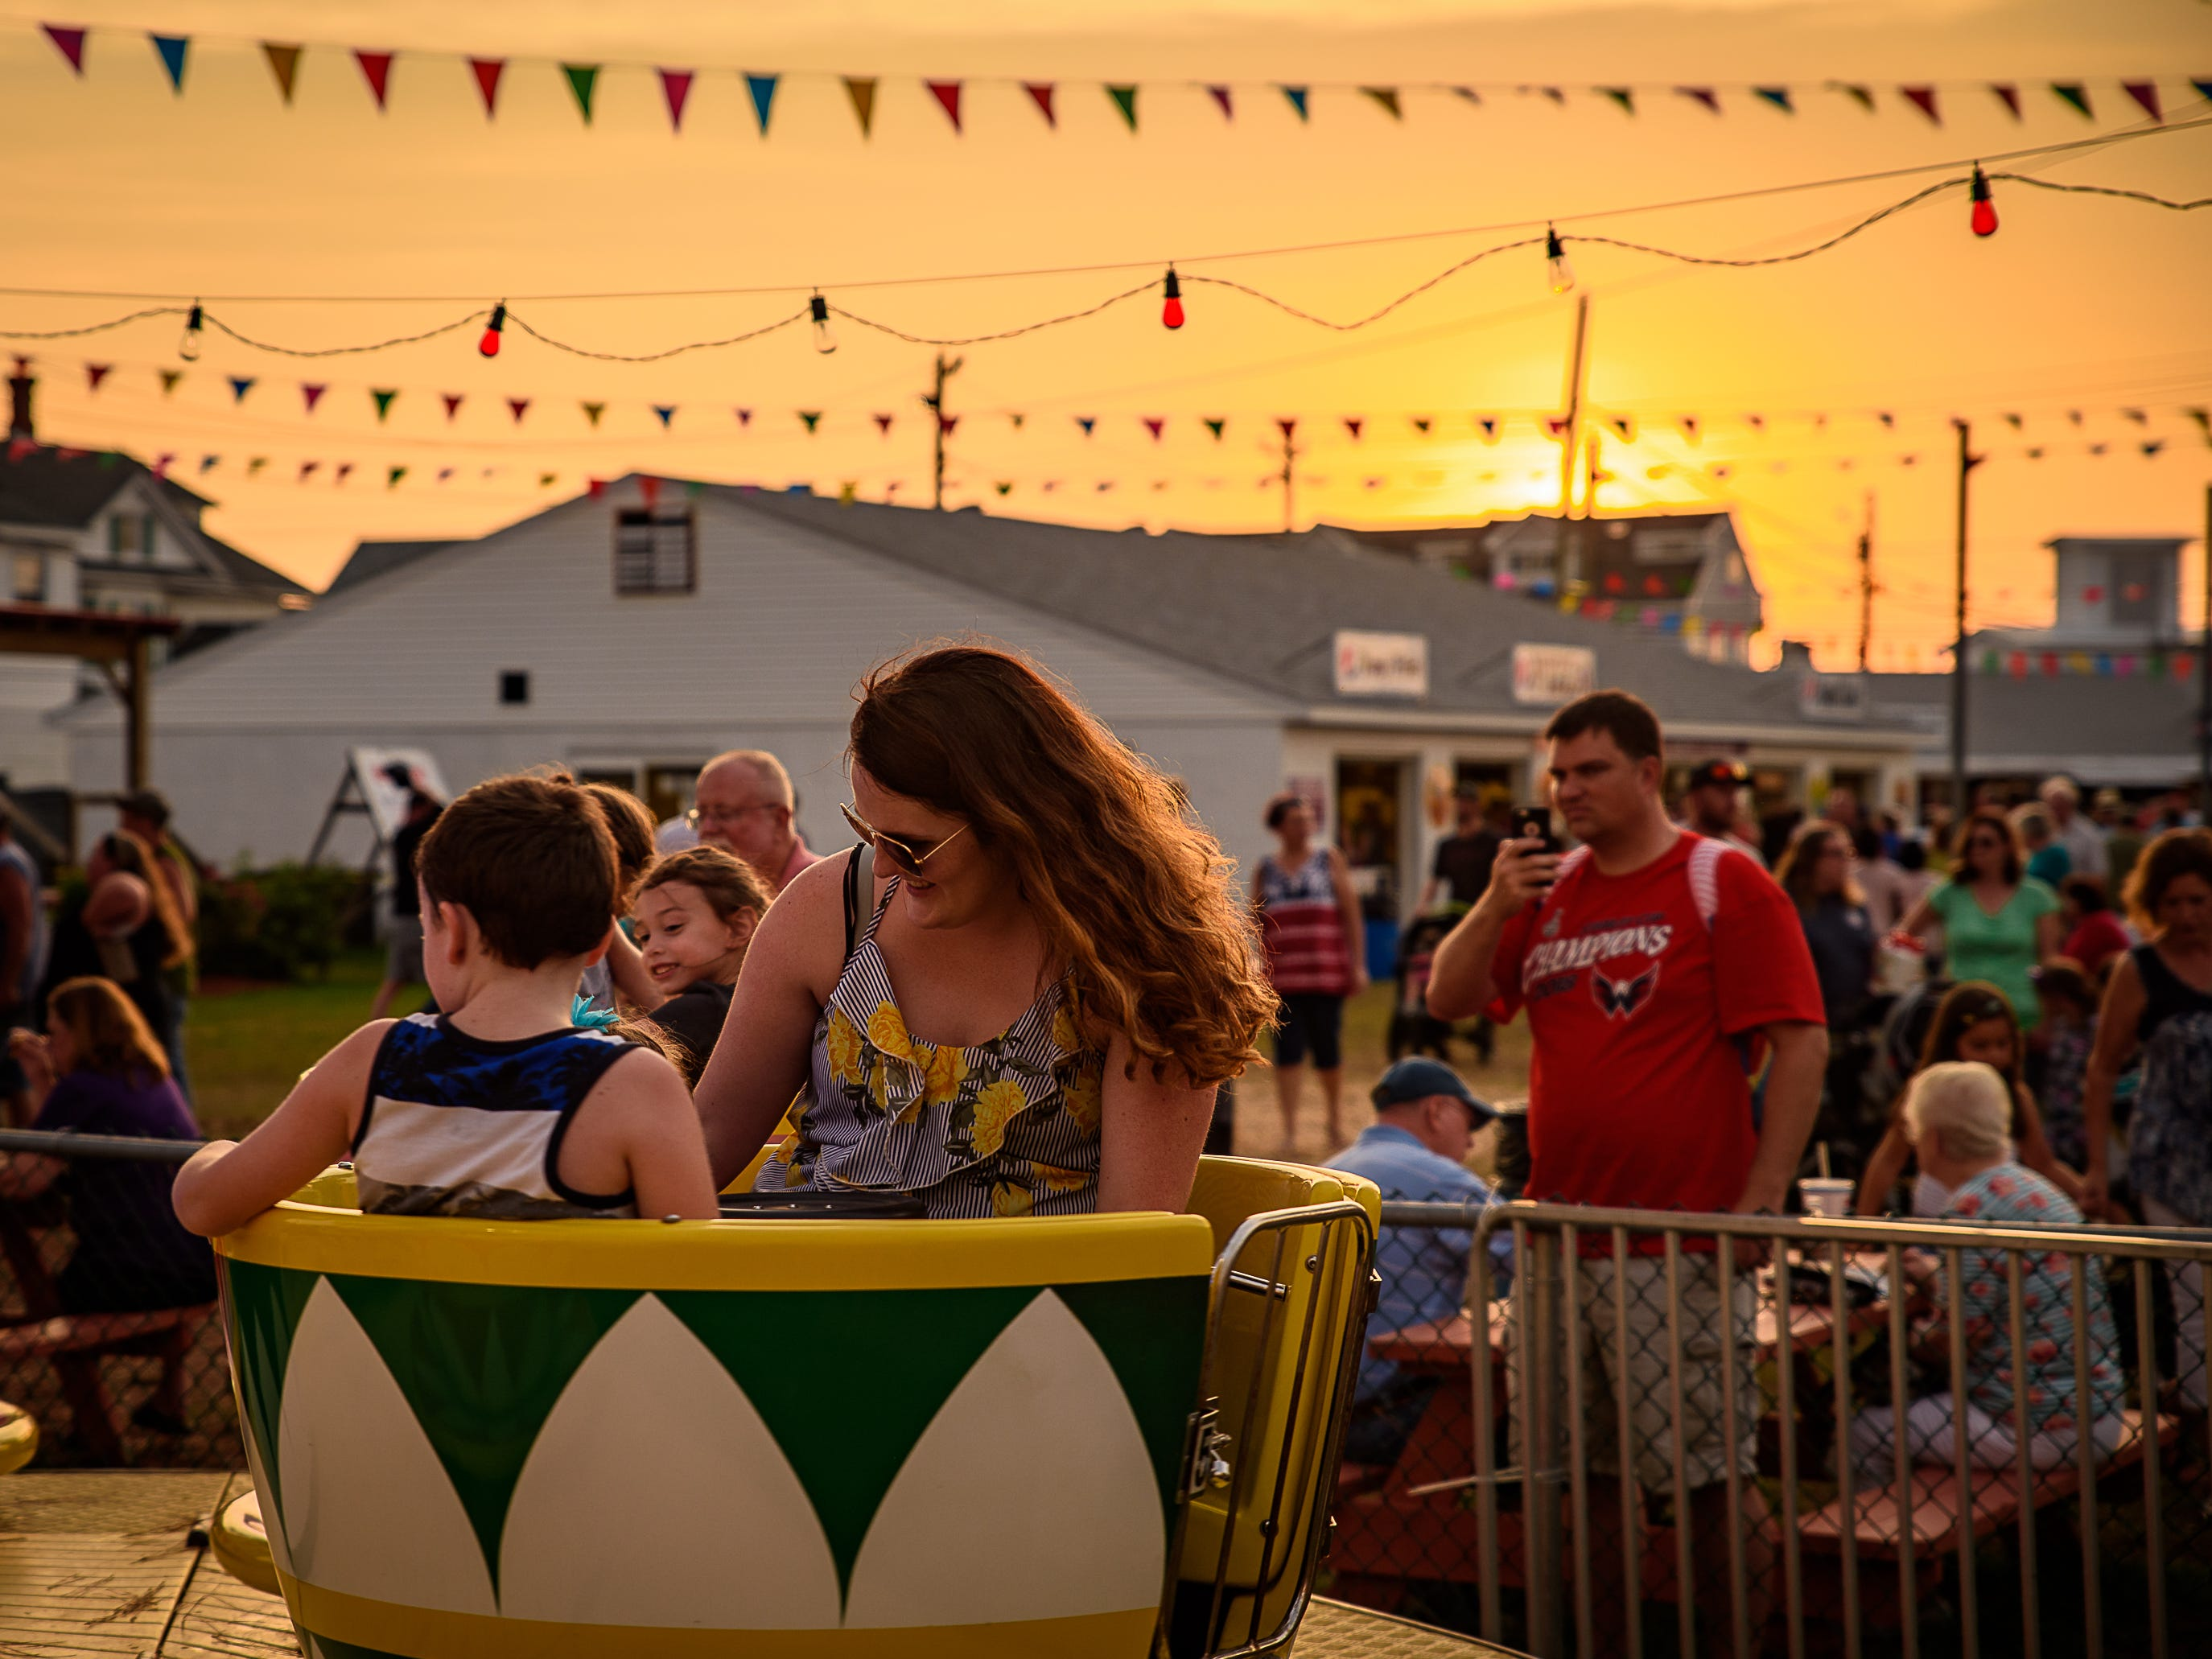 The Teacup Ride had several fans at the Chincoteague Fireman's Carnival.